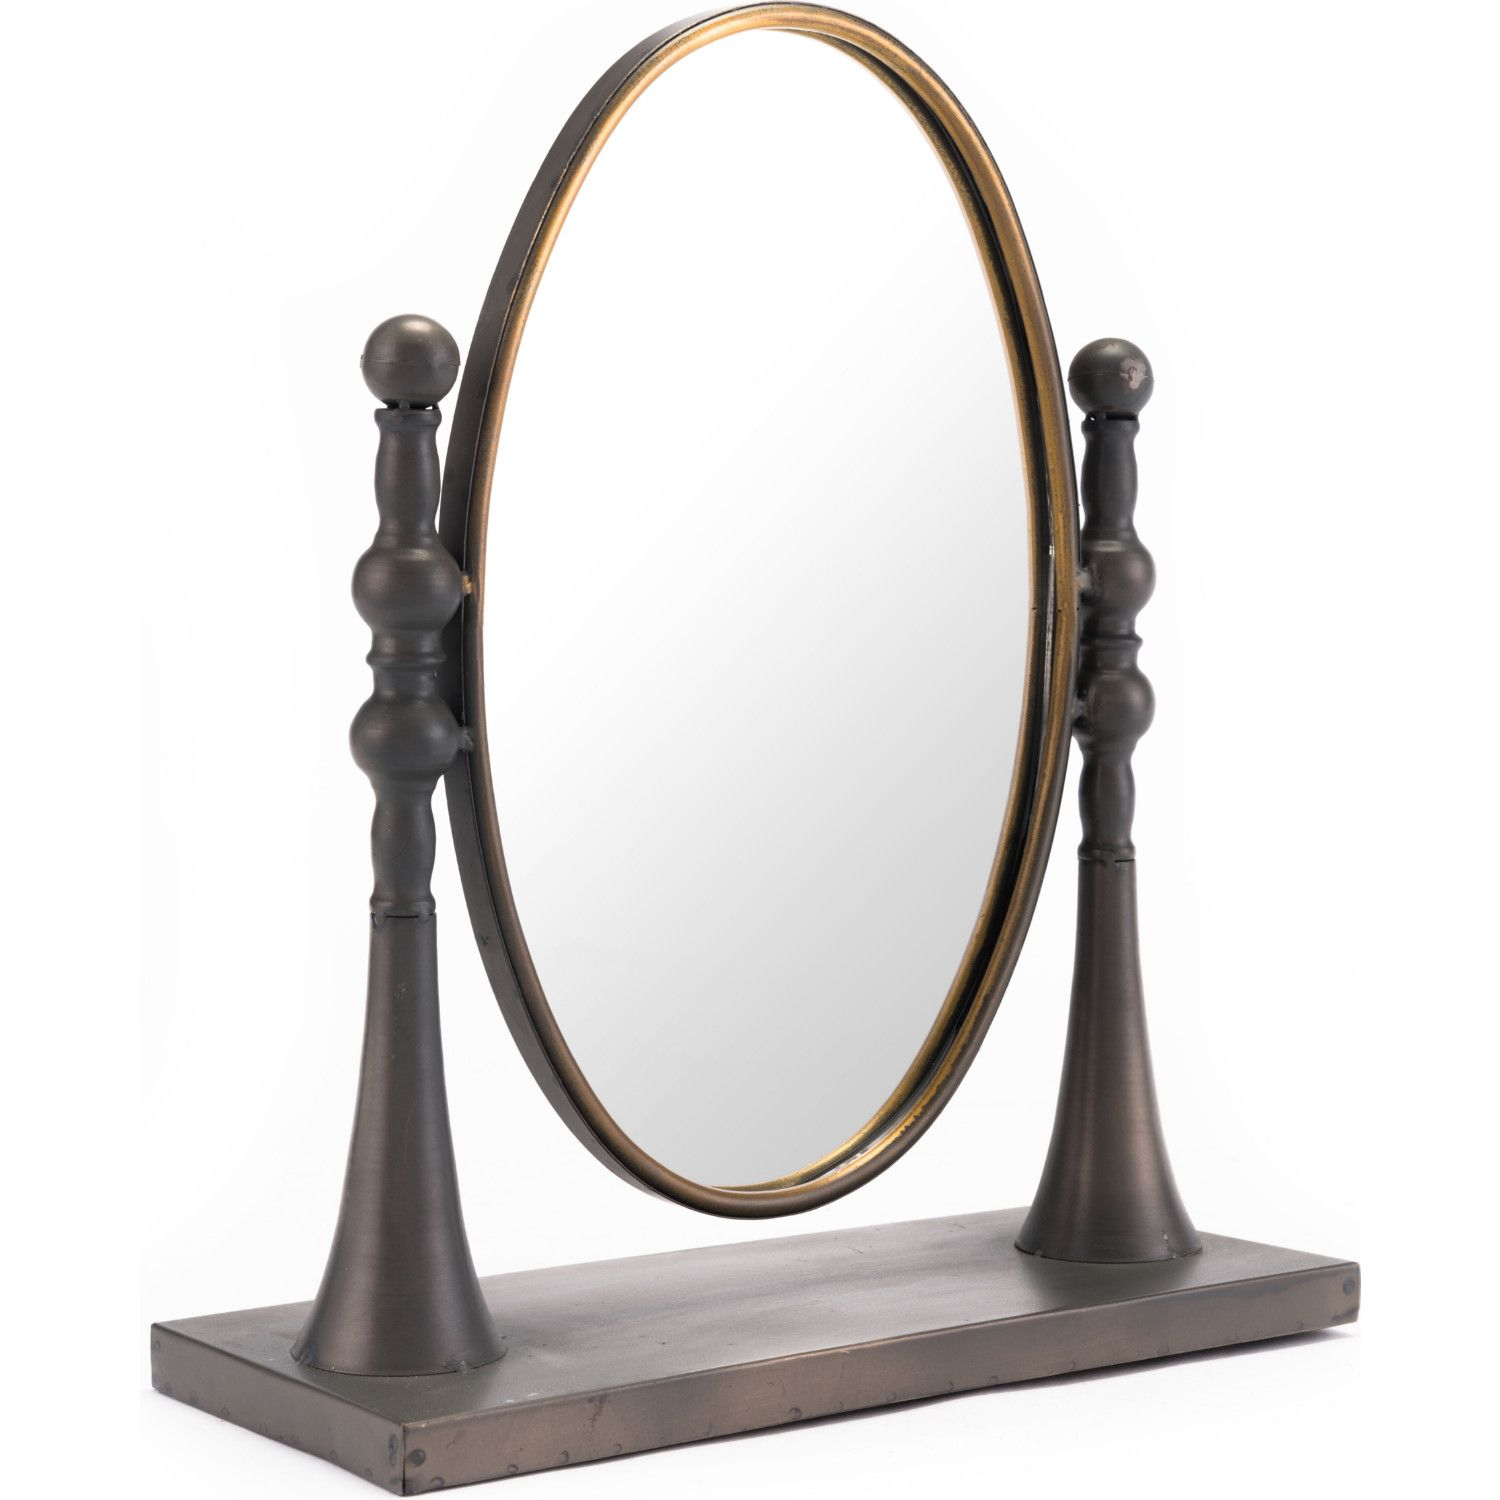 Circle Mirror W Stand In Black Gold Steel Mirror By Zuo